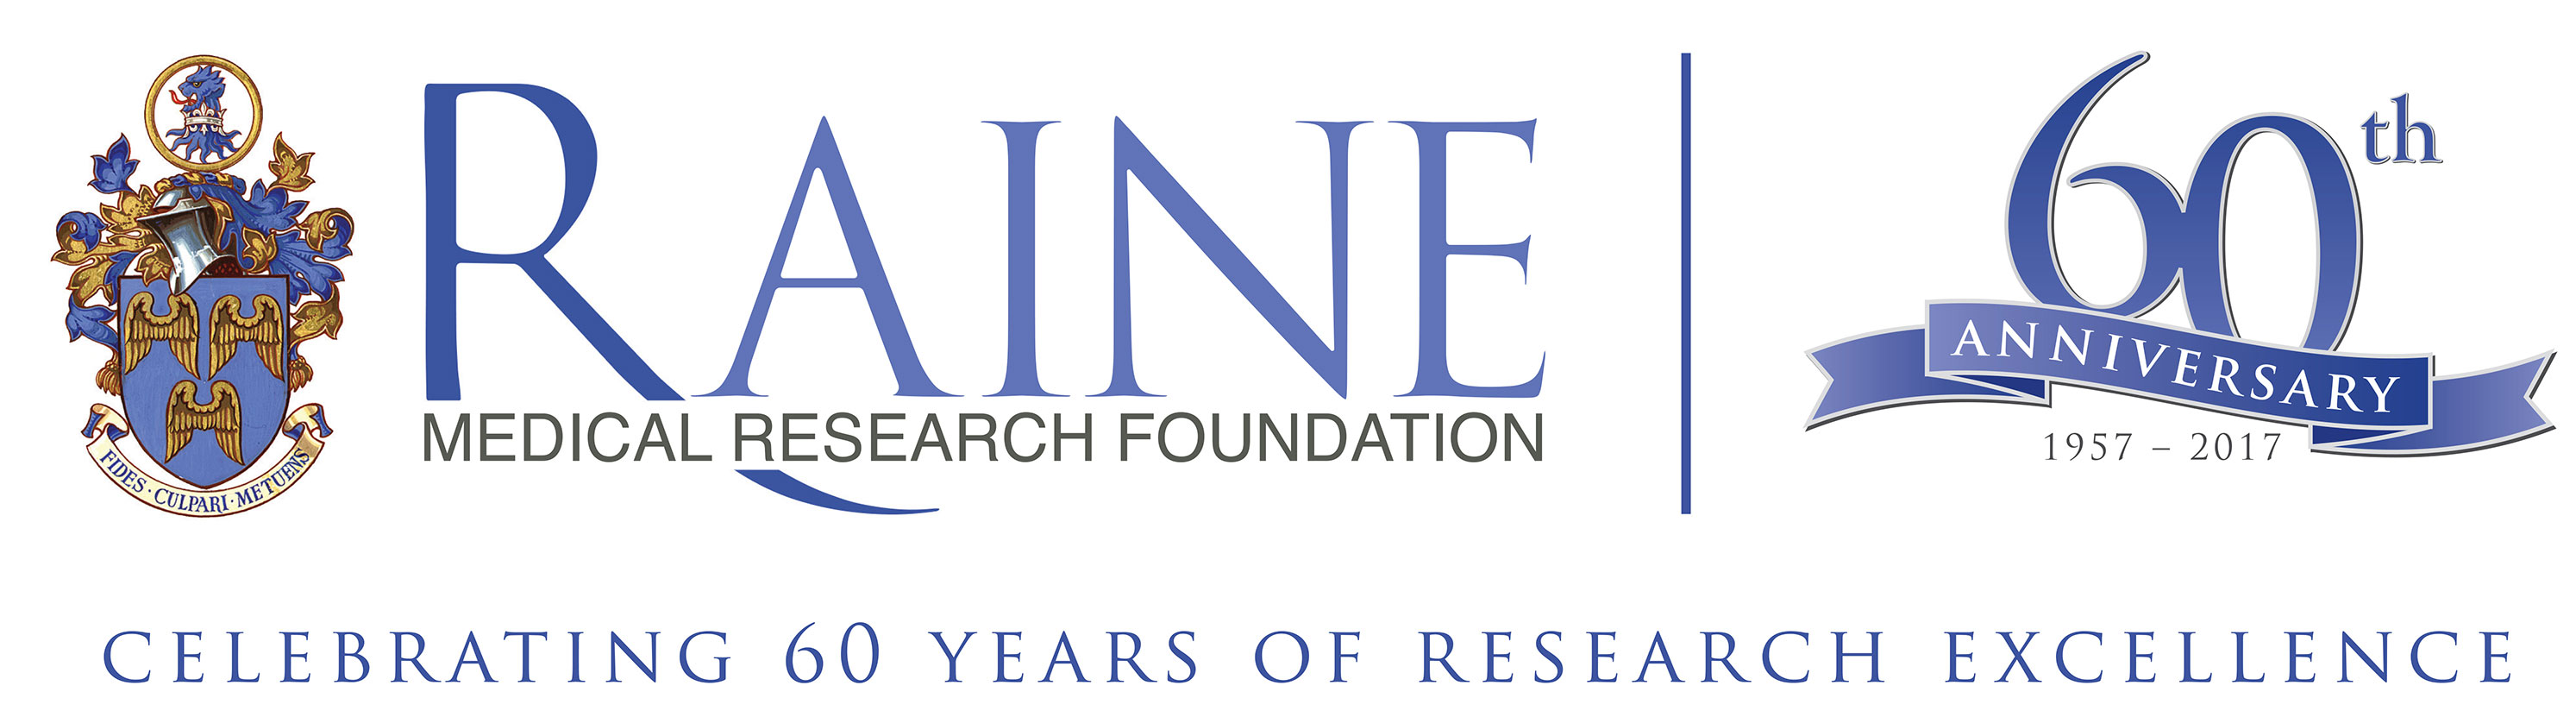 raine-foundation-60th-anniversary-logo-2